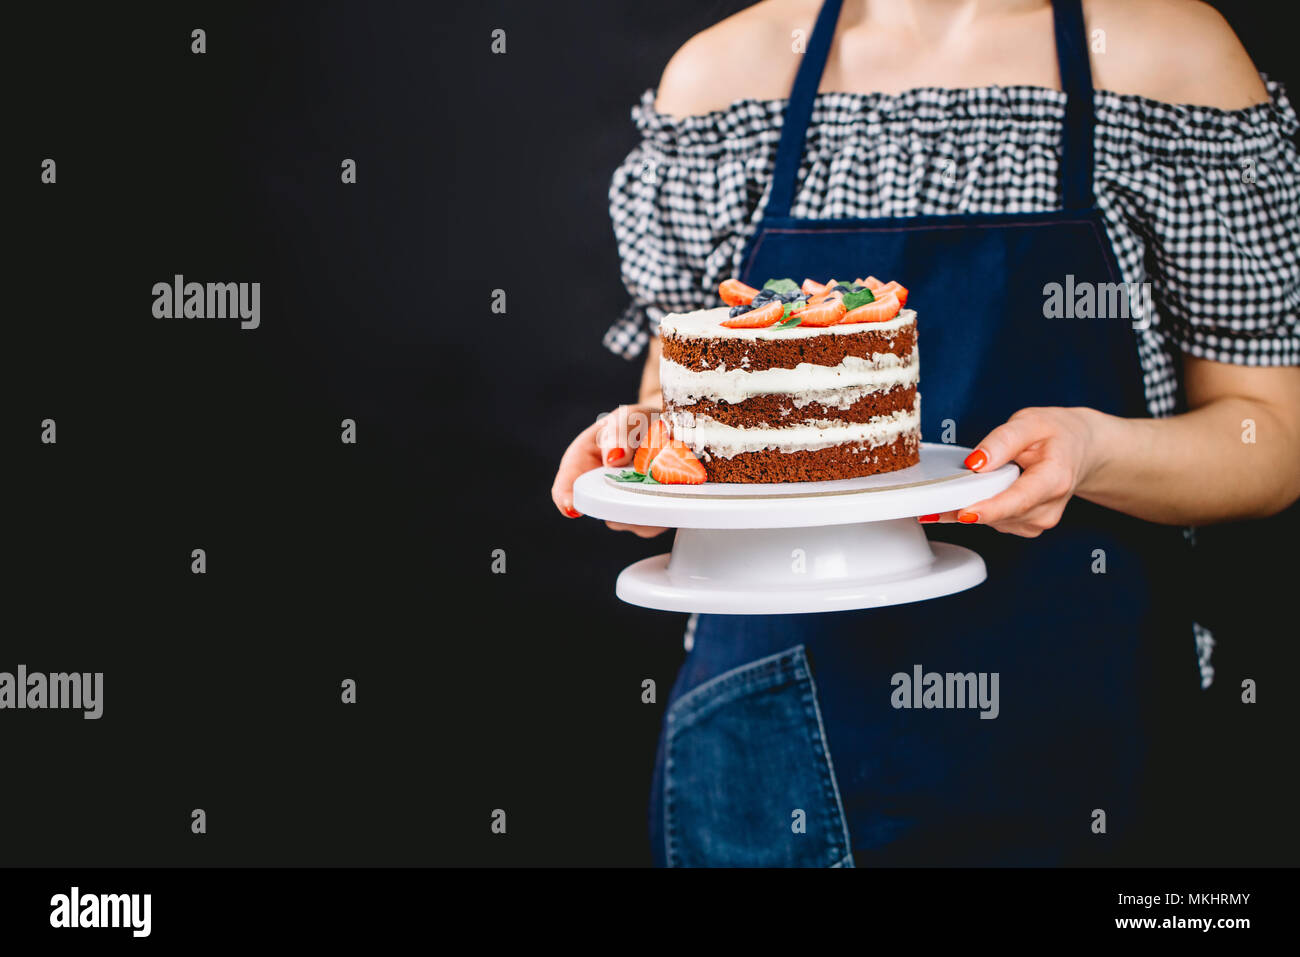 Young Woman In Denim Apron Holding Chocolate Birthday Cake With Berries Over Black Background